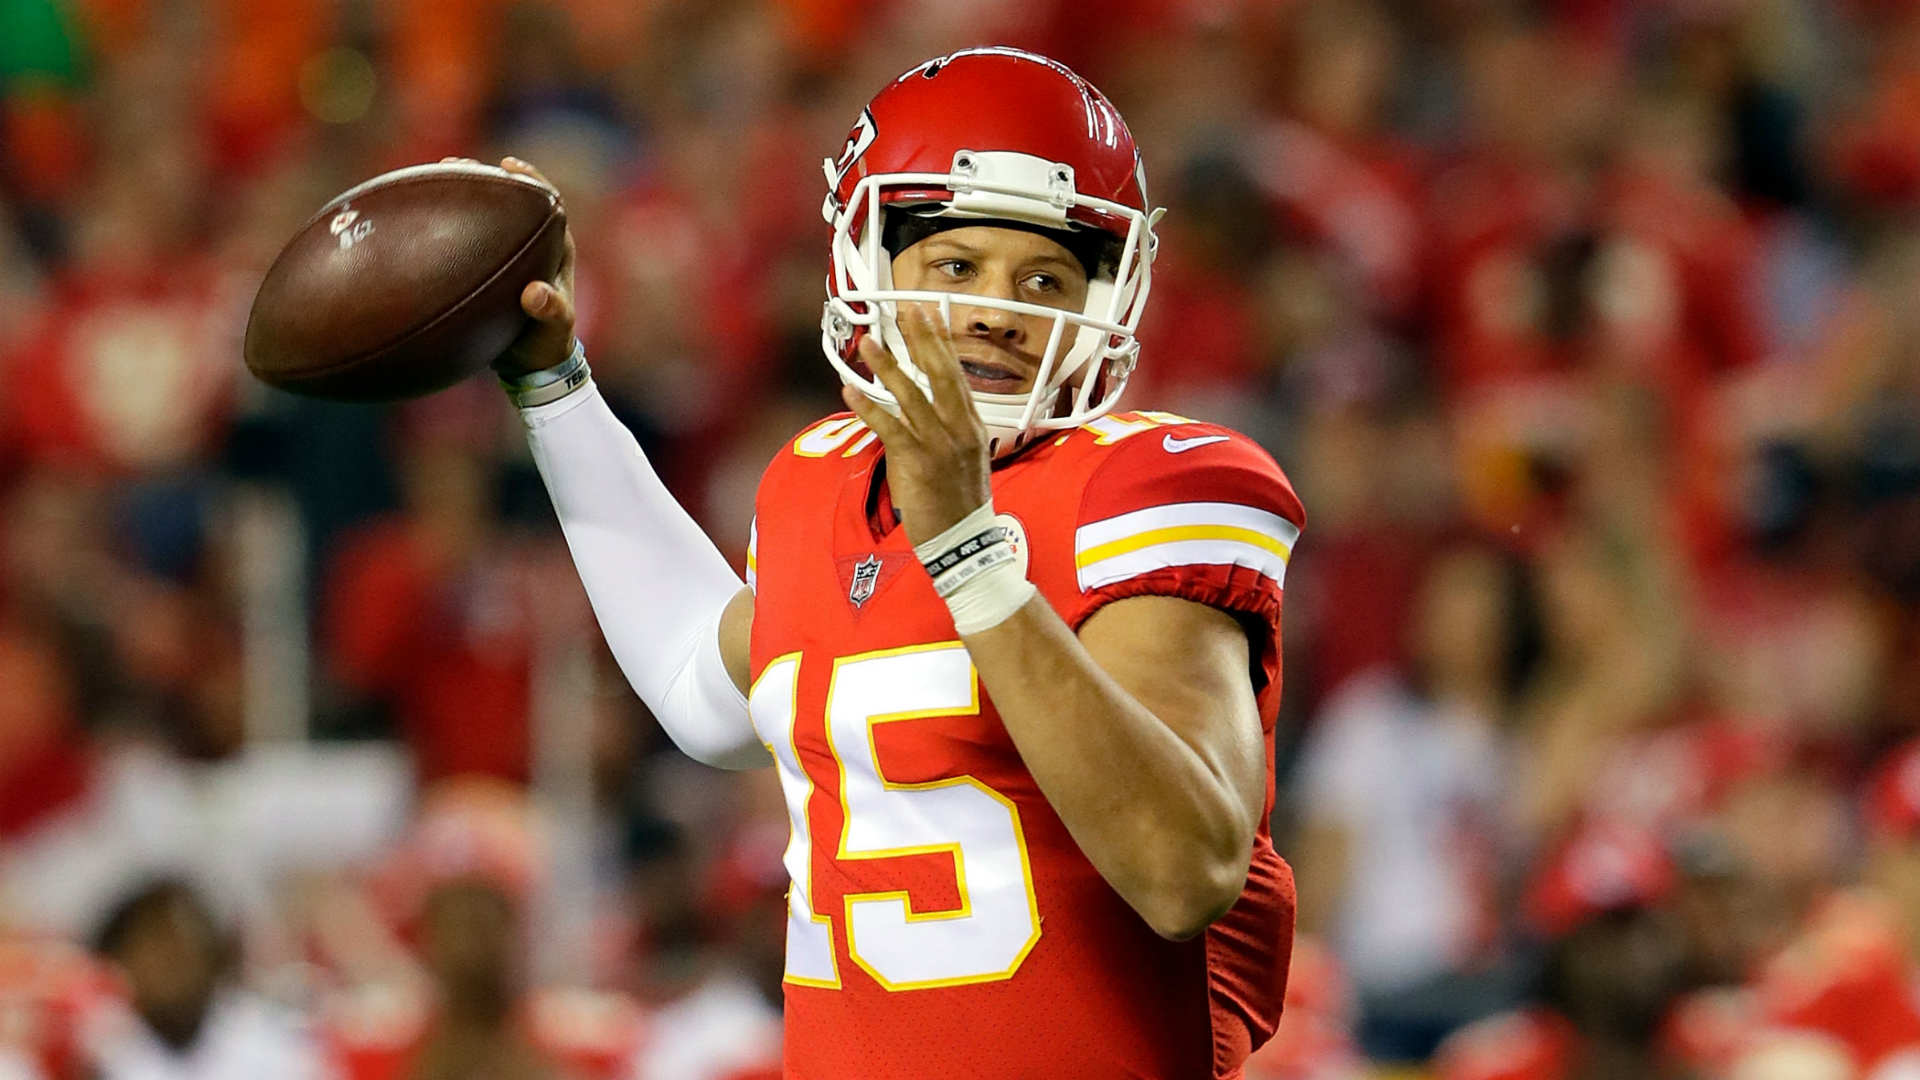 Chiefs will start Patrick Mahomes at QB Sunday